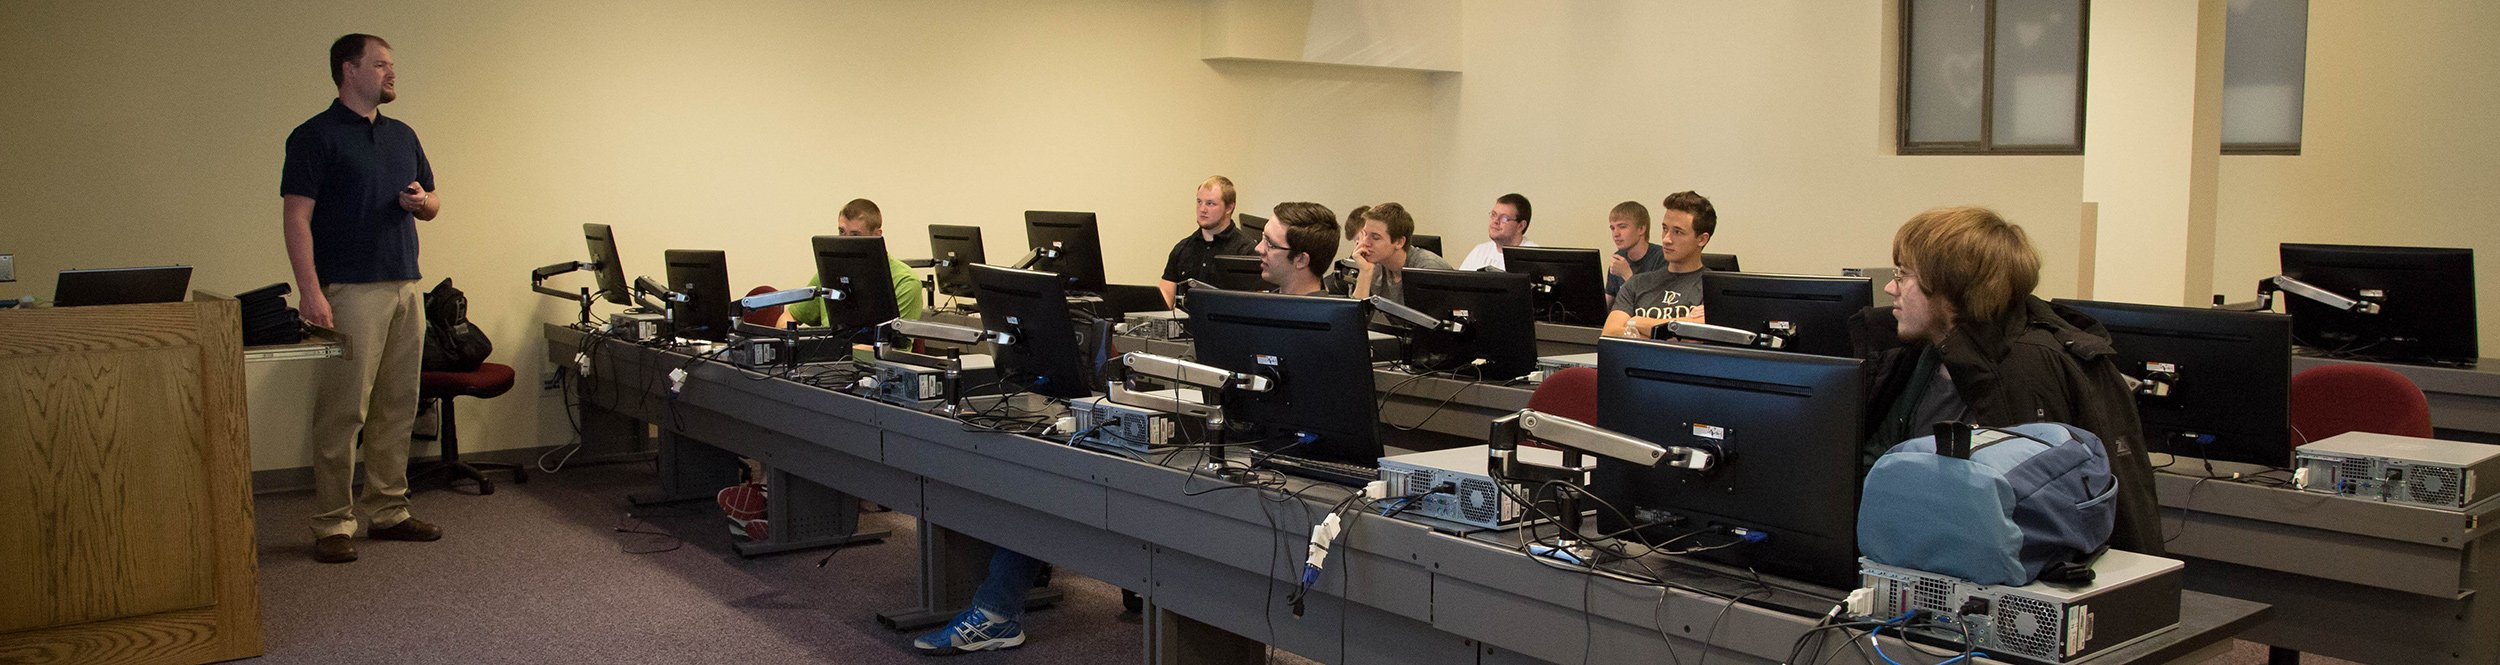 Students working in a computer science classroom.